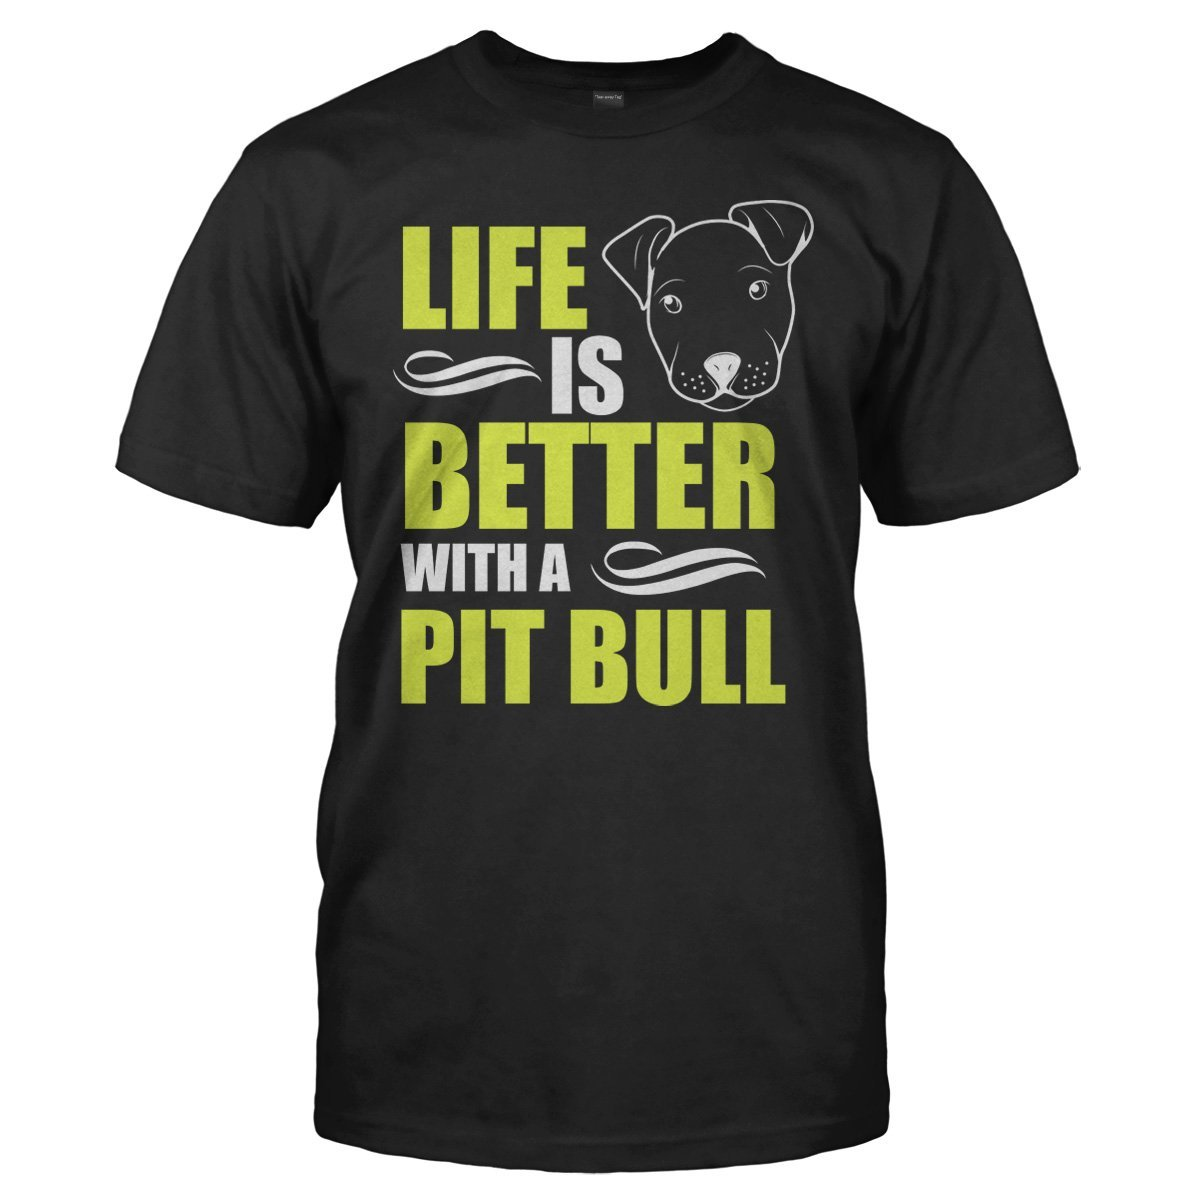 Life Is Better With A Pit Bull - T Shirt